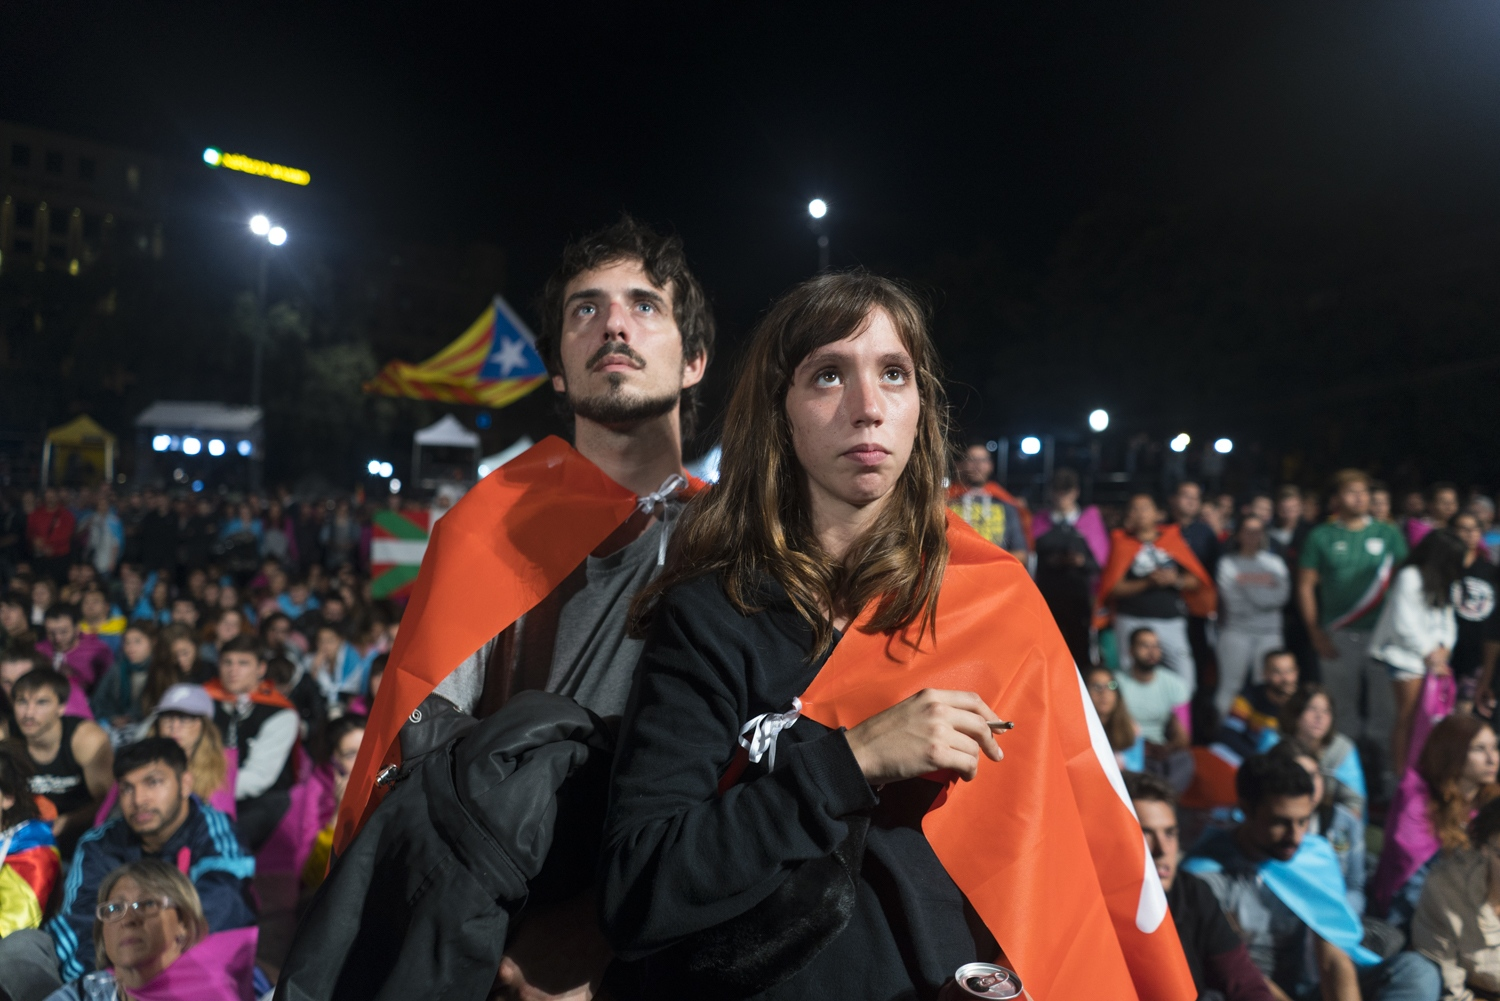 The night of the Catalan independence referendum, Oct. 1, 2017.